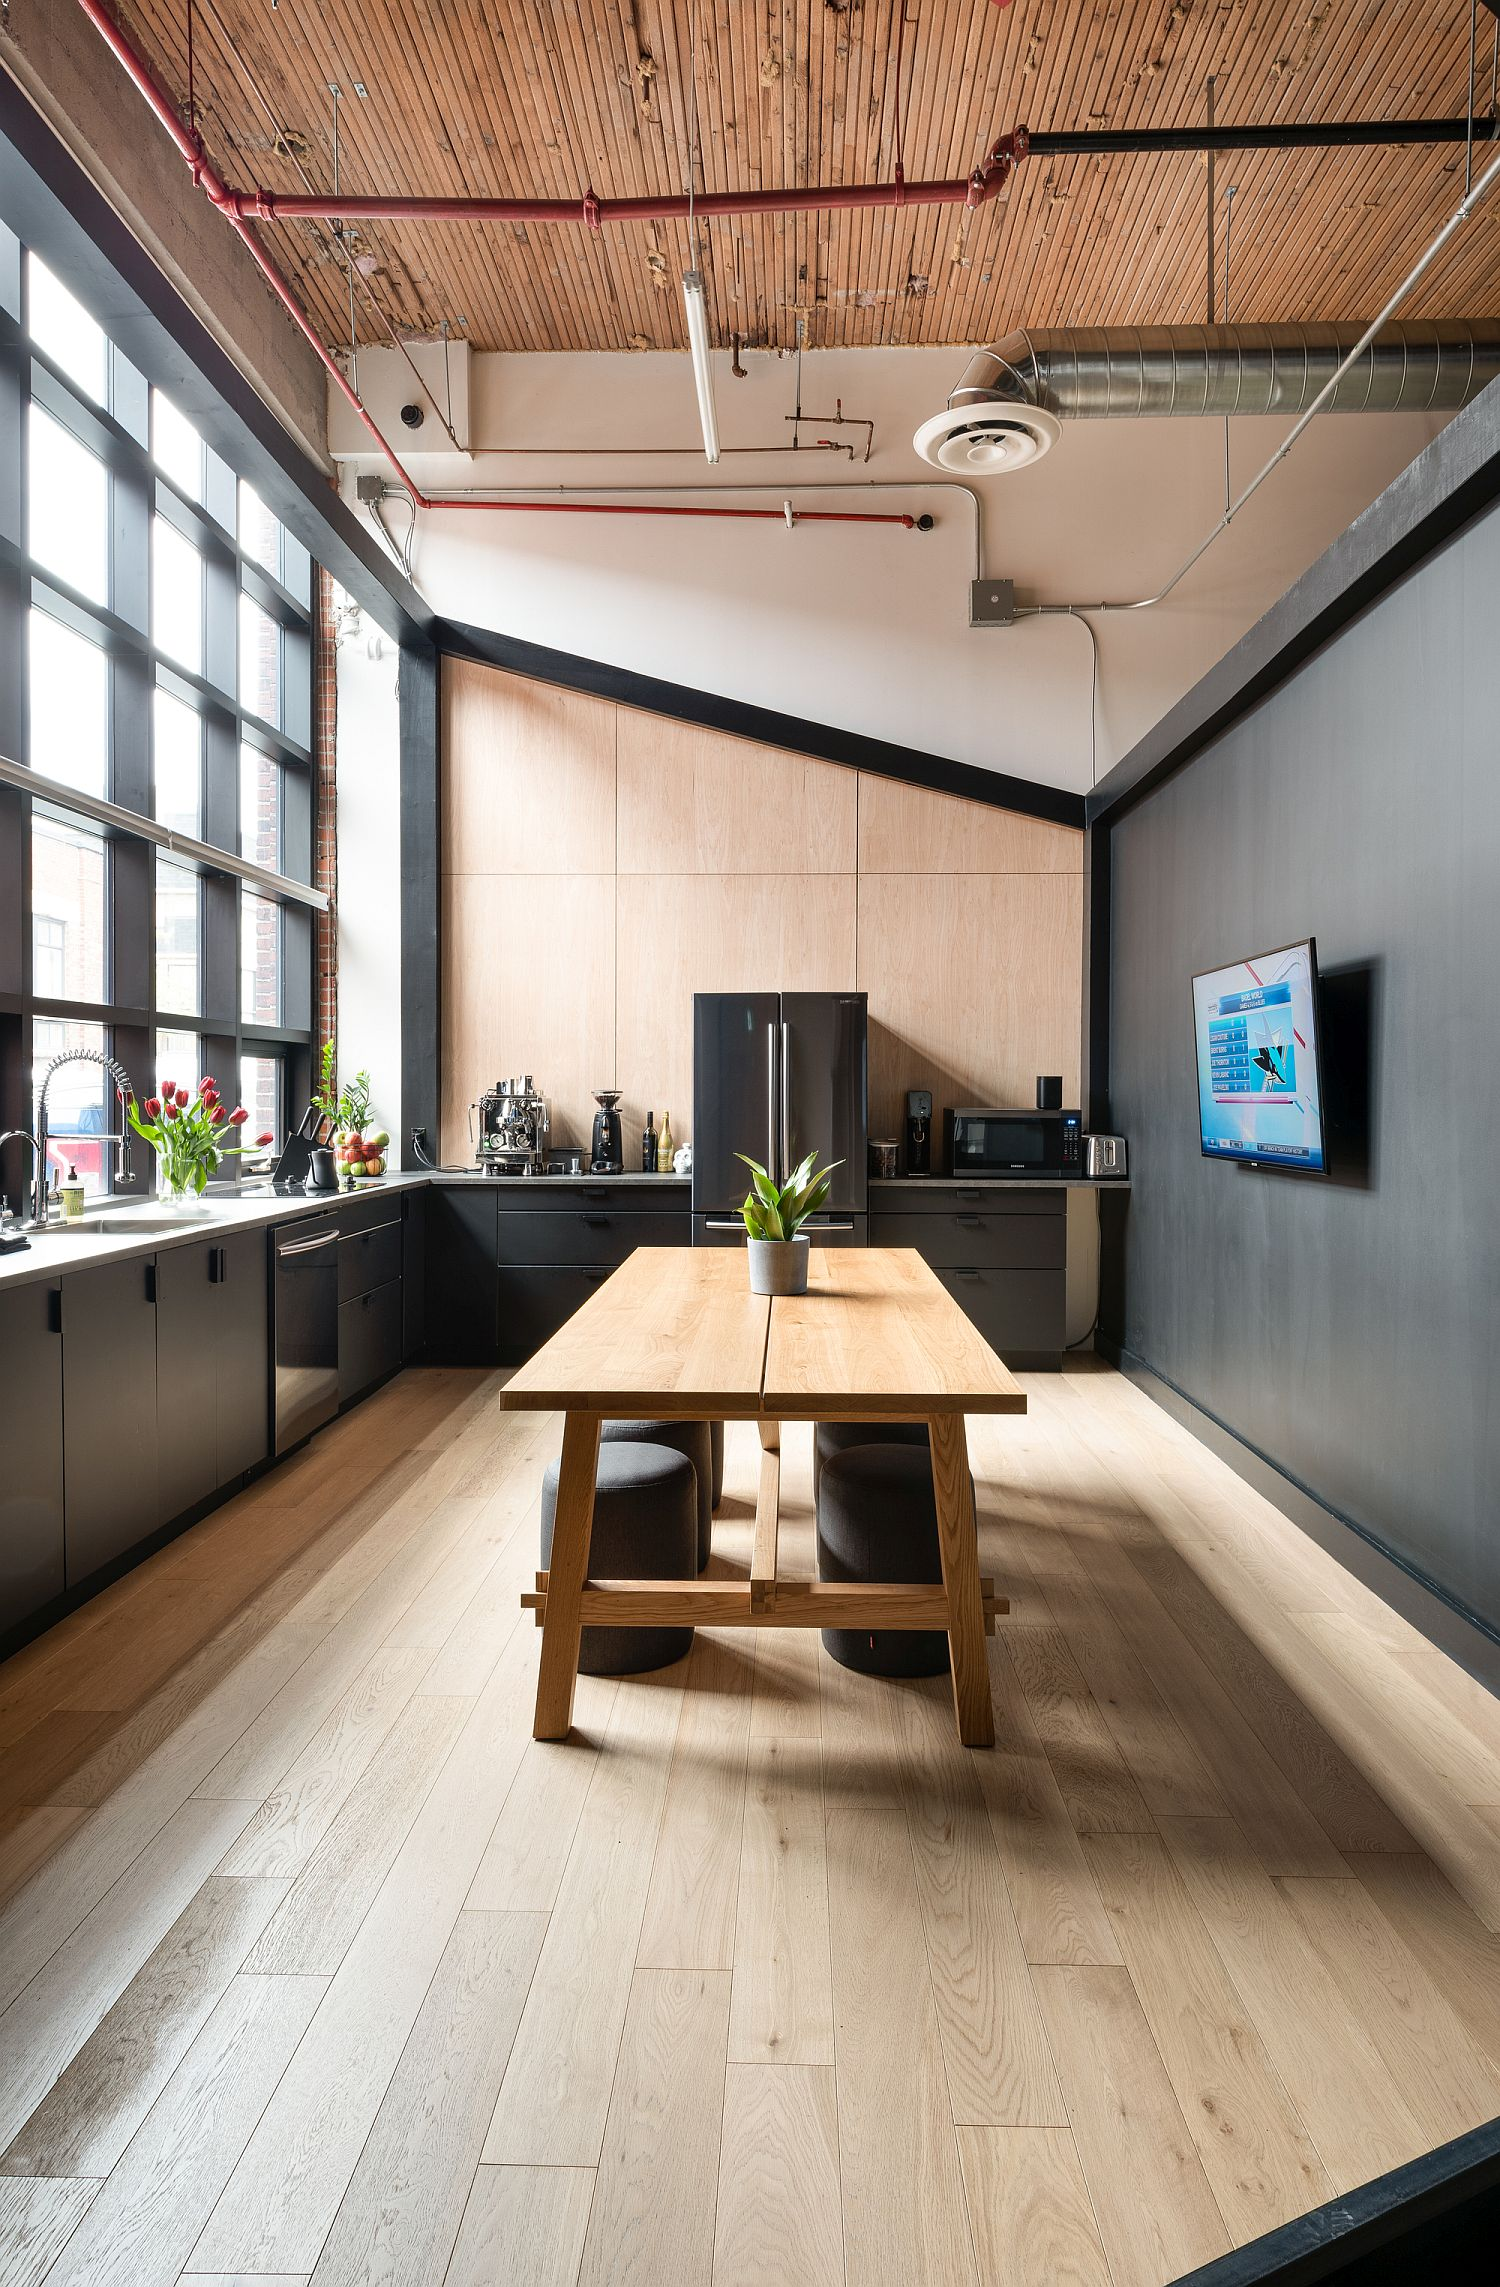 Spacious kitchen of the office with dark and dashing style